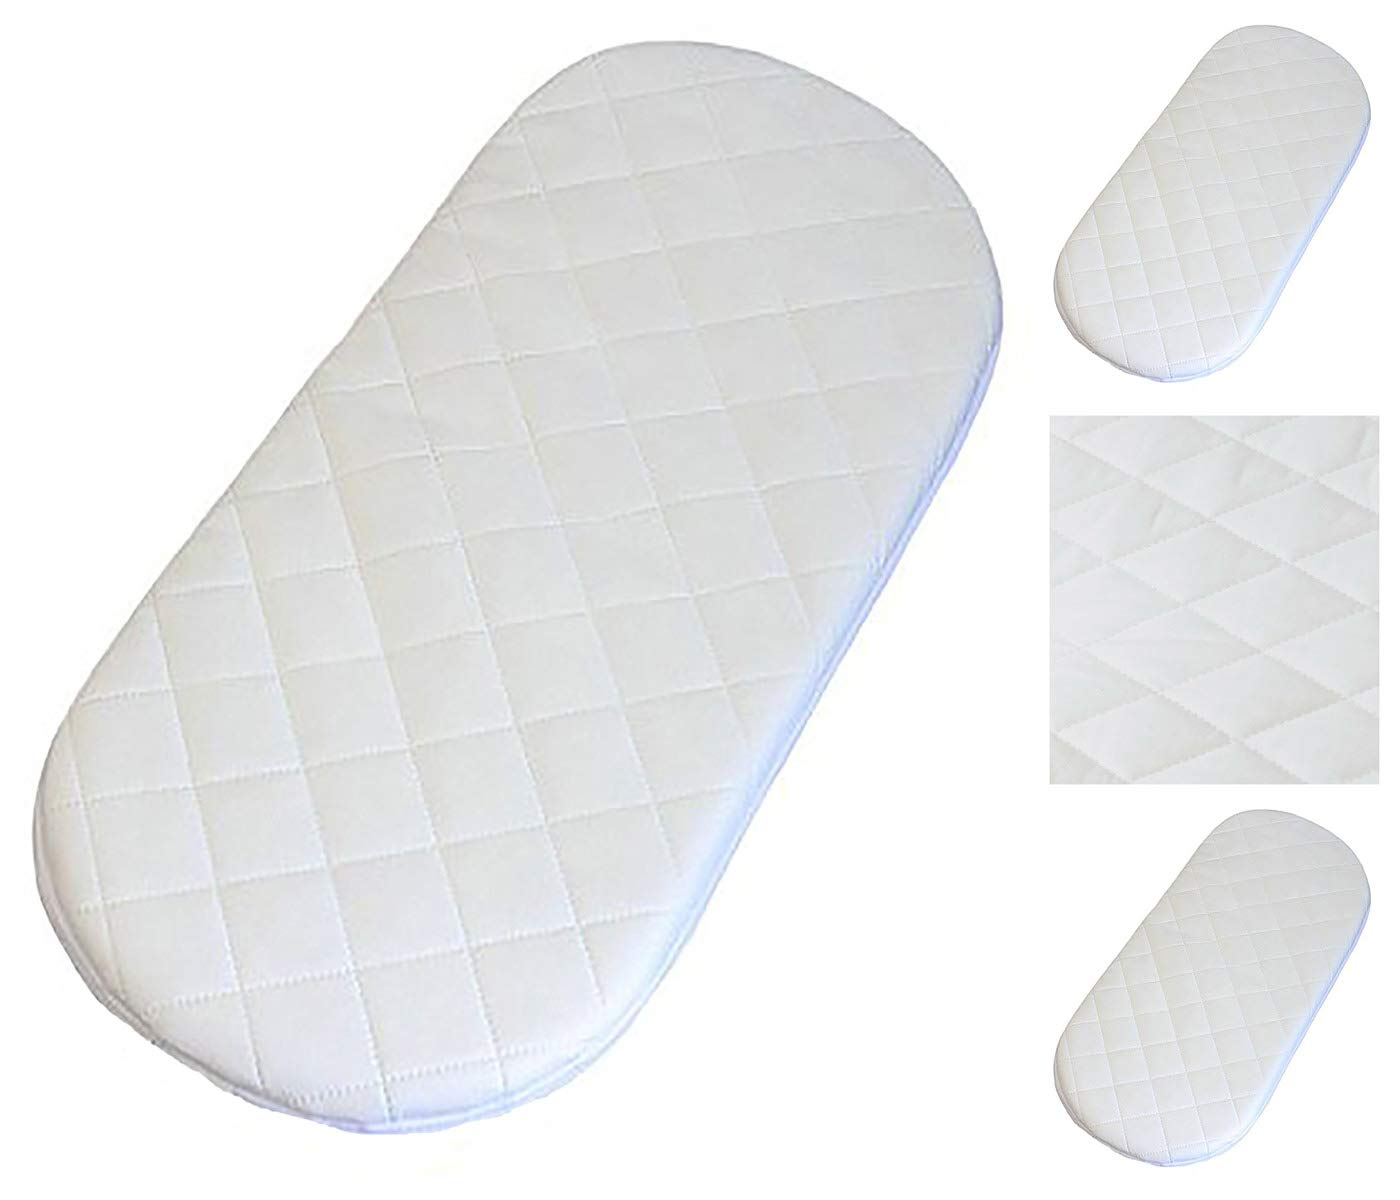 PRAM QUILTED ALL SIZES OVAL SHAPED ROUND CORNERS SOFT MATTRESSES 76X36X3 CM MOSES BASKET 76x36x3 cm